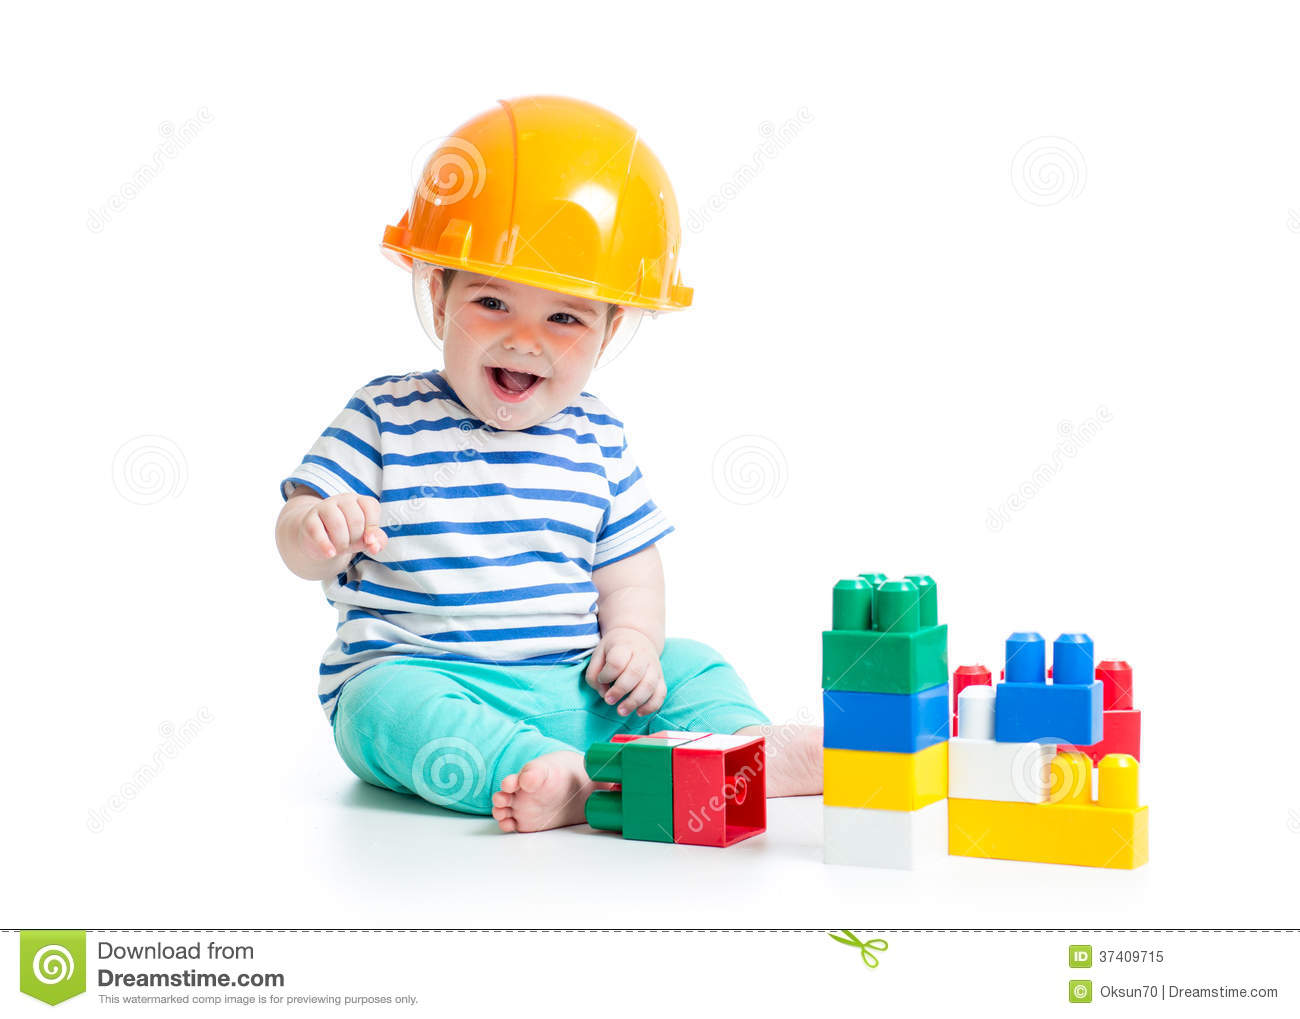 Building Toys For Babies : Baby playing with building blocks toys royalty free stock